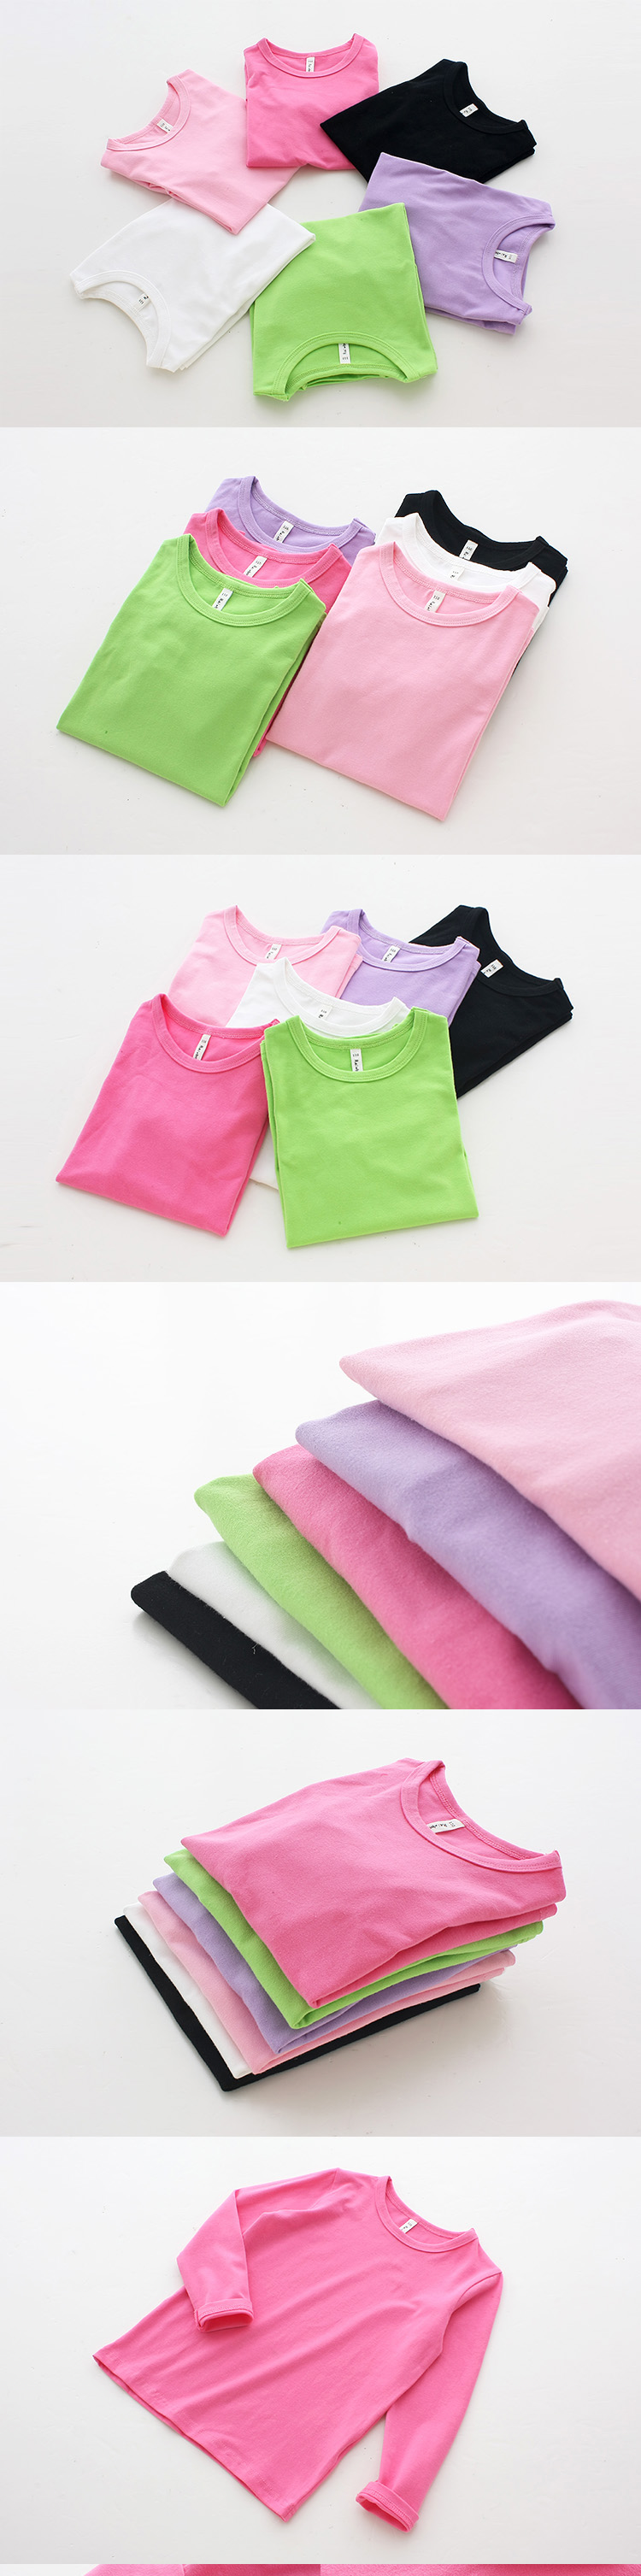 Autumn New 100% Cotton Kids T Shirt Candy Color Long Sleeve Baby Boys Girls T-Shirt Children Pullovers Tee Girl Boys Clothes 16